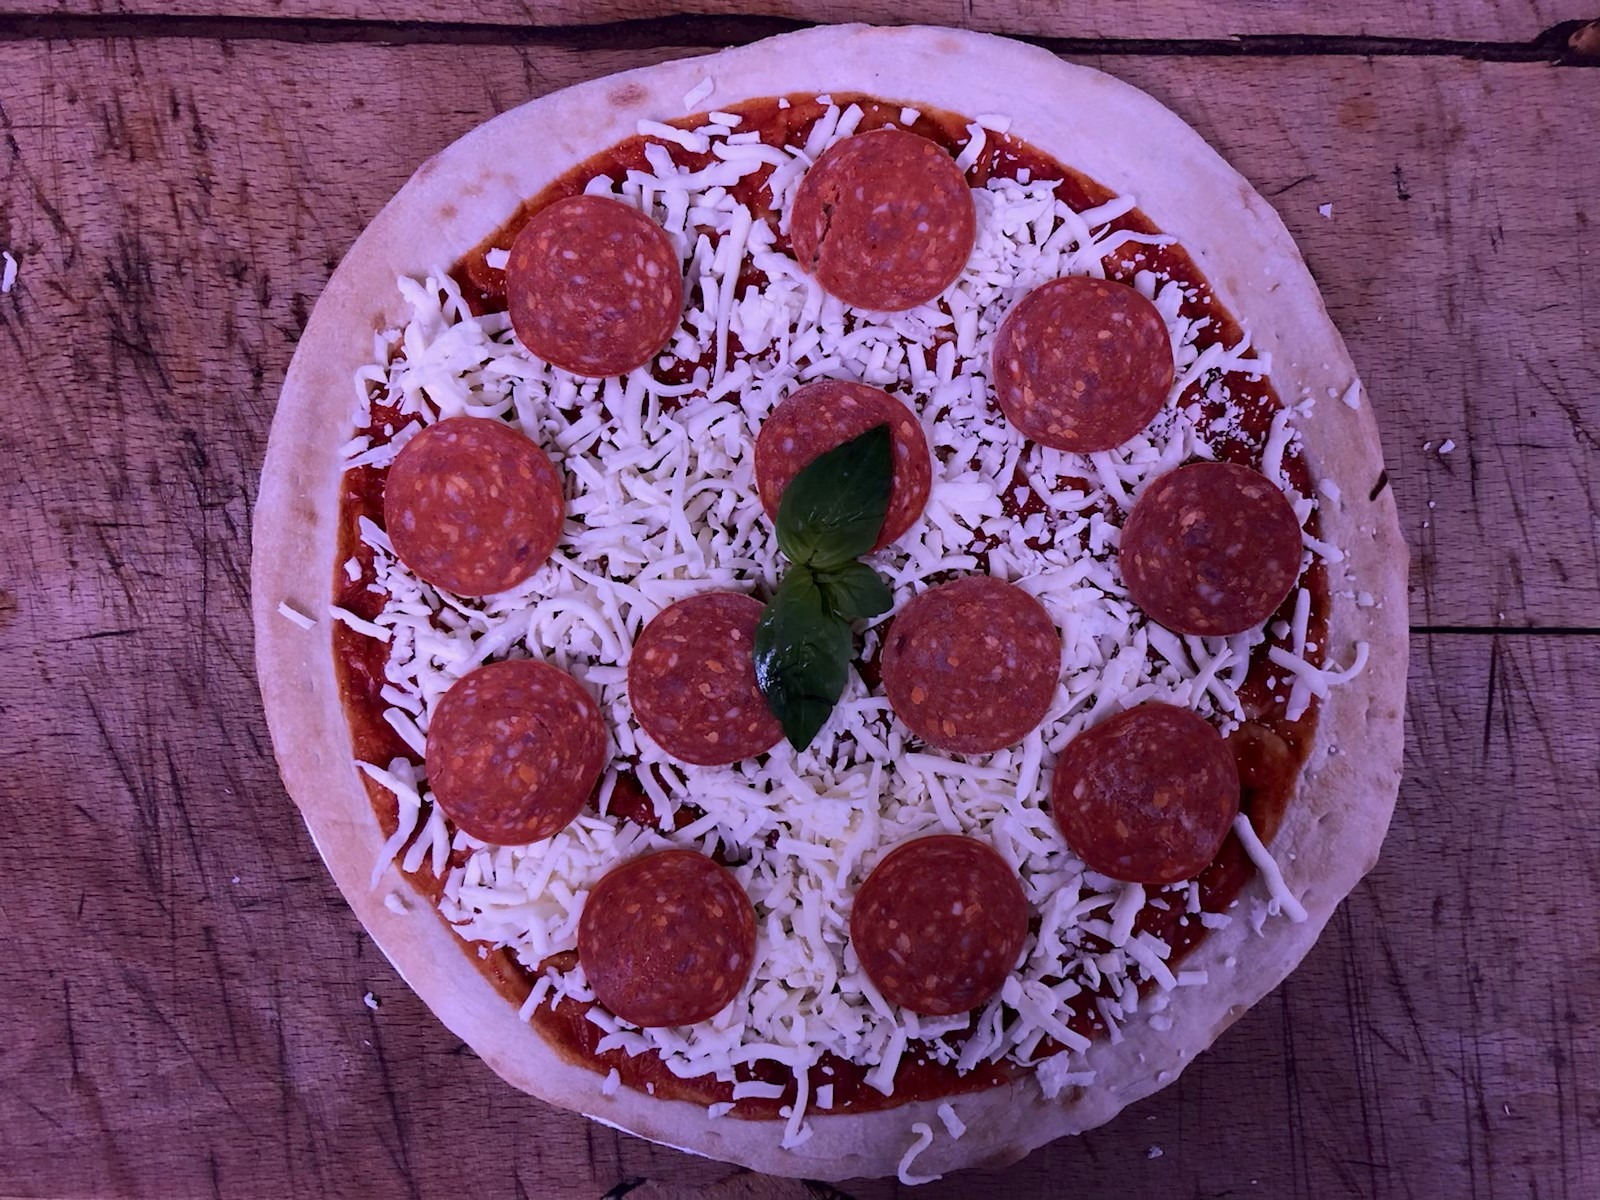 Slater's Home Made Sourdough Pizza - The Pepperoni